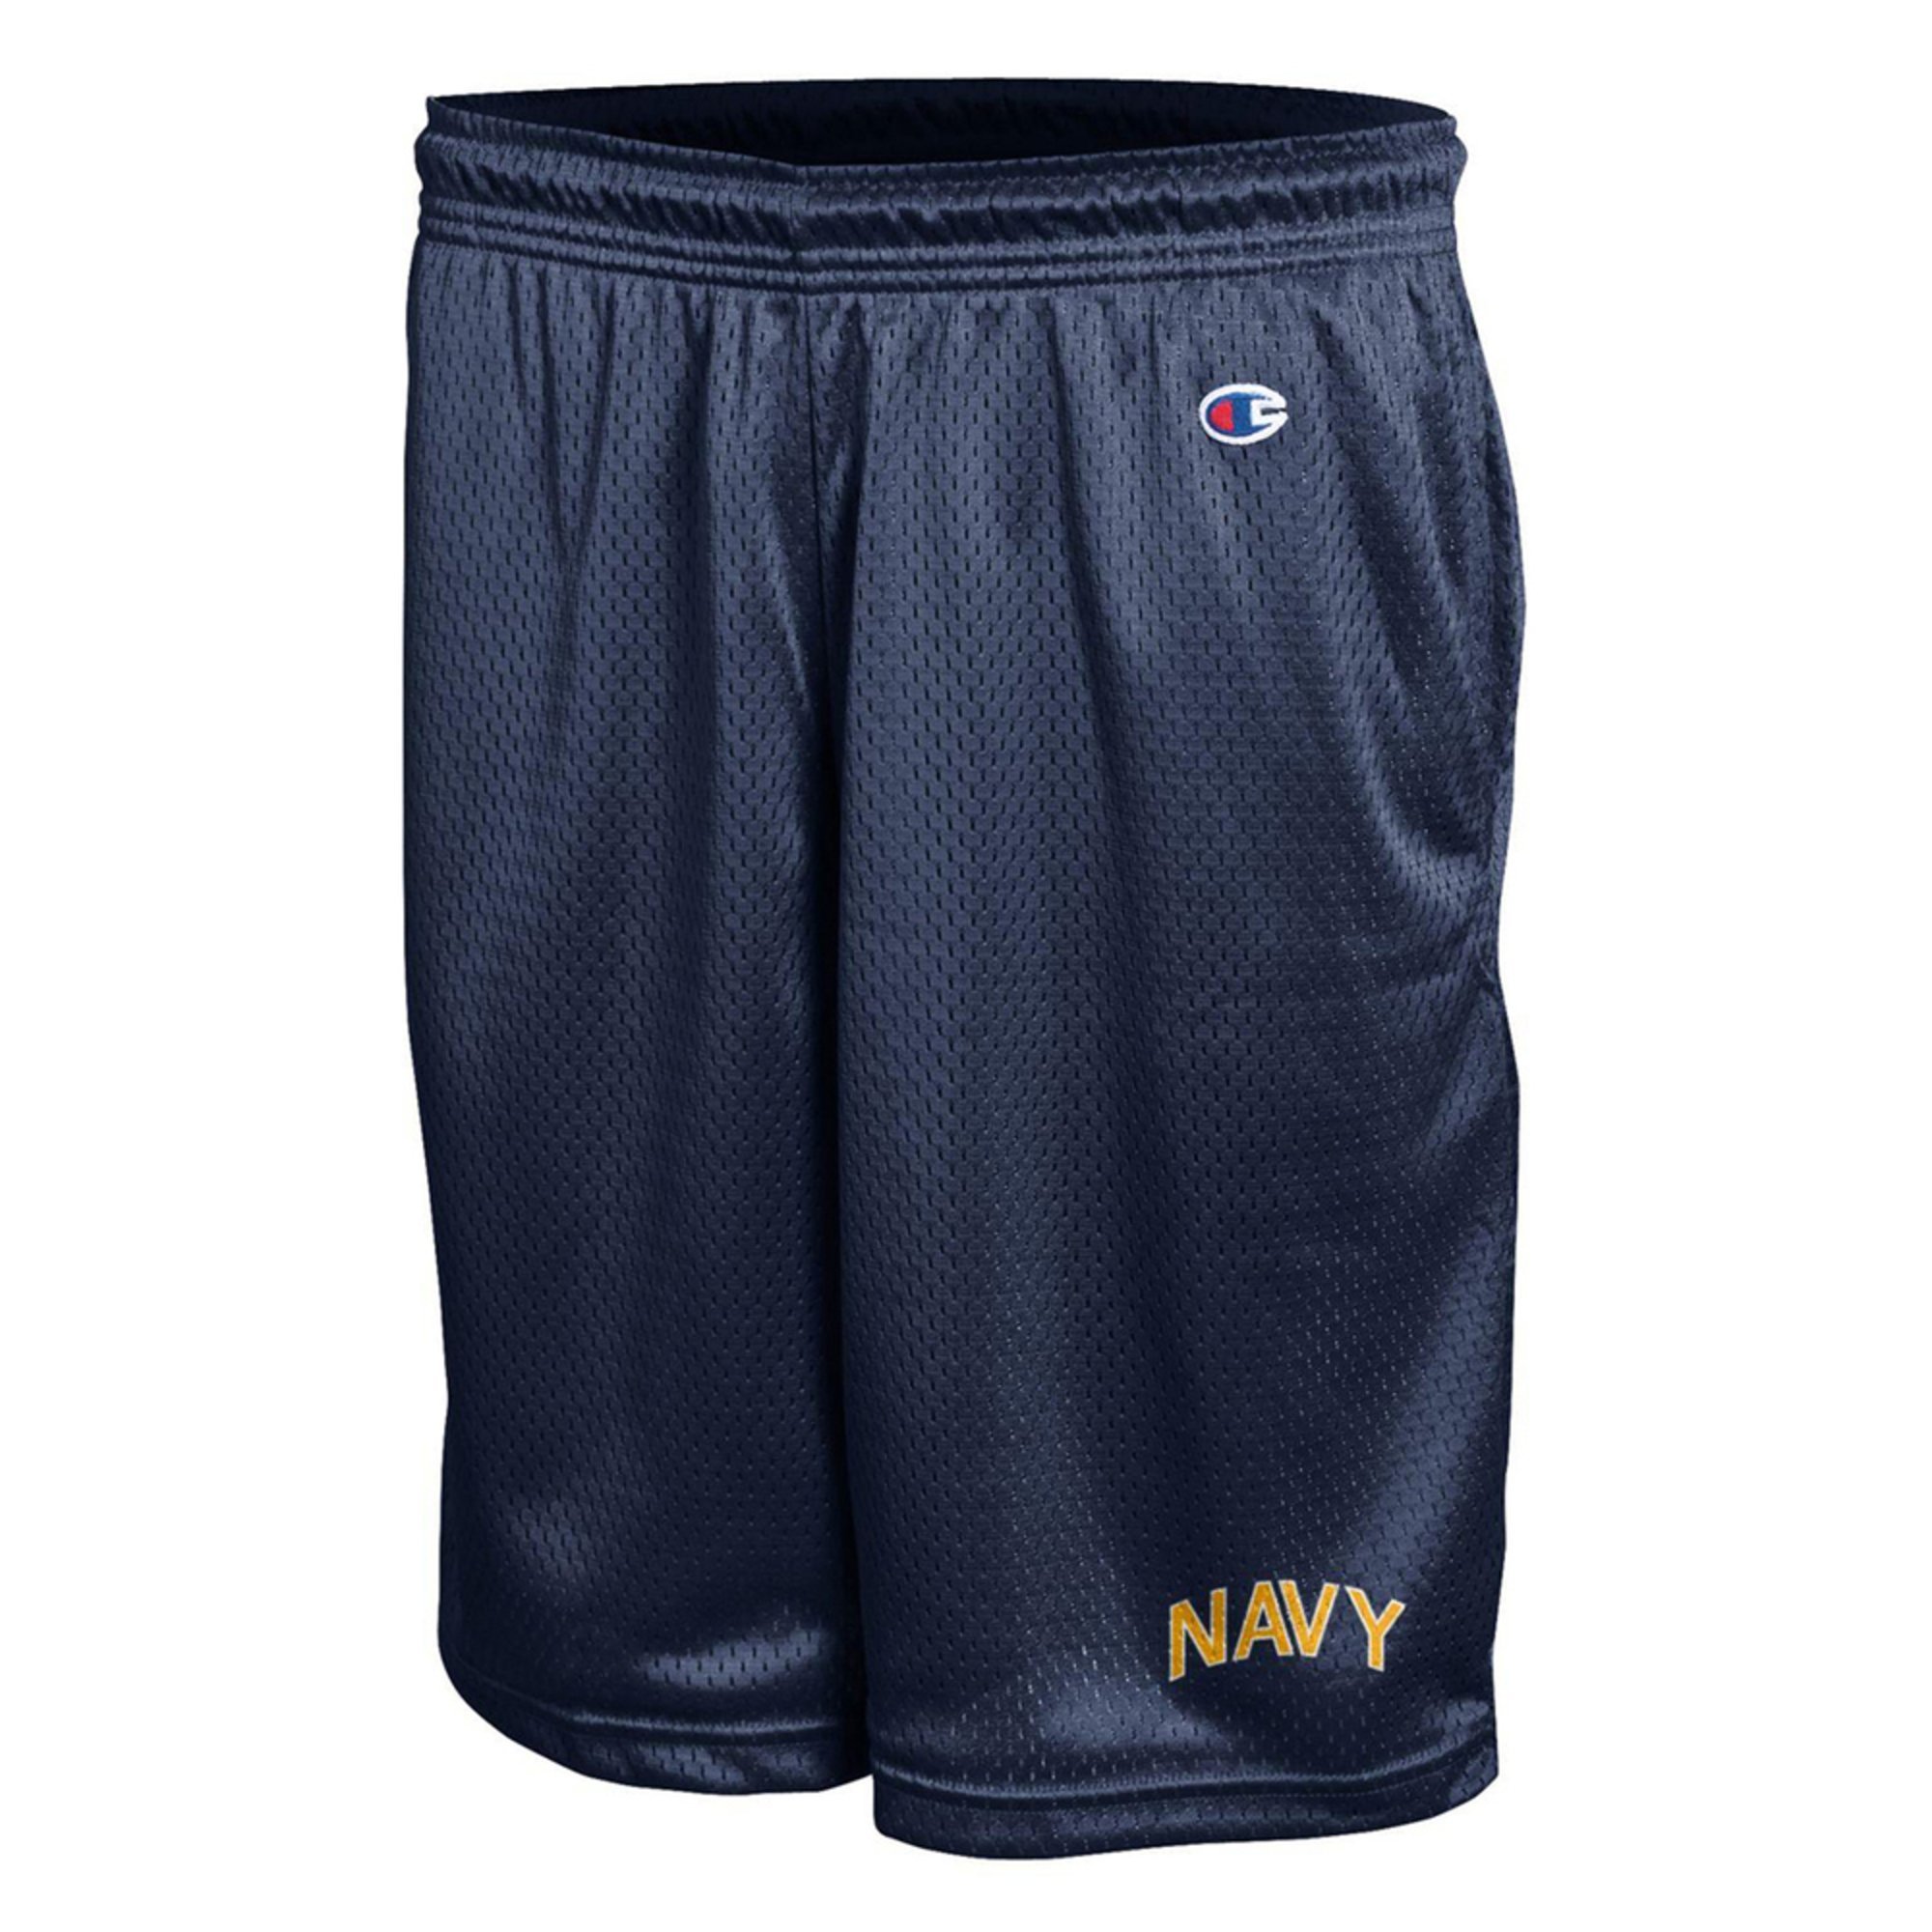 8478d8137df635 Champion. Champion Men s USN Mesh Side Pocket Shorts